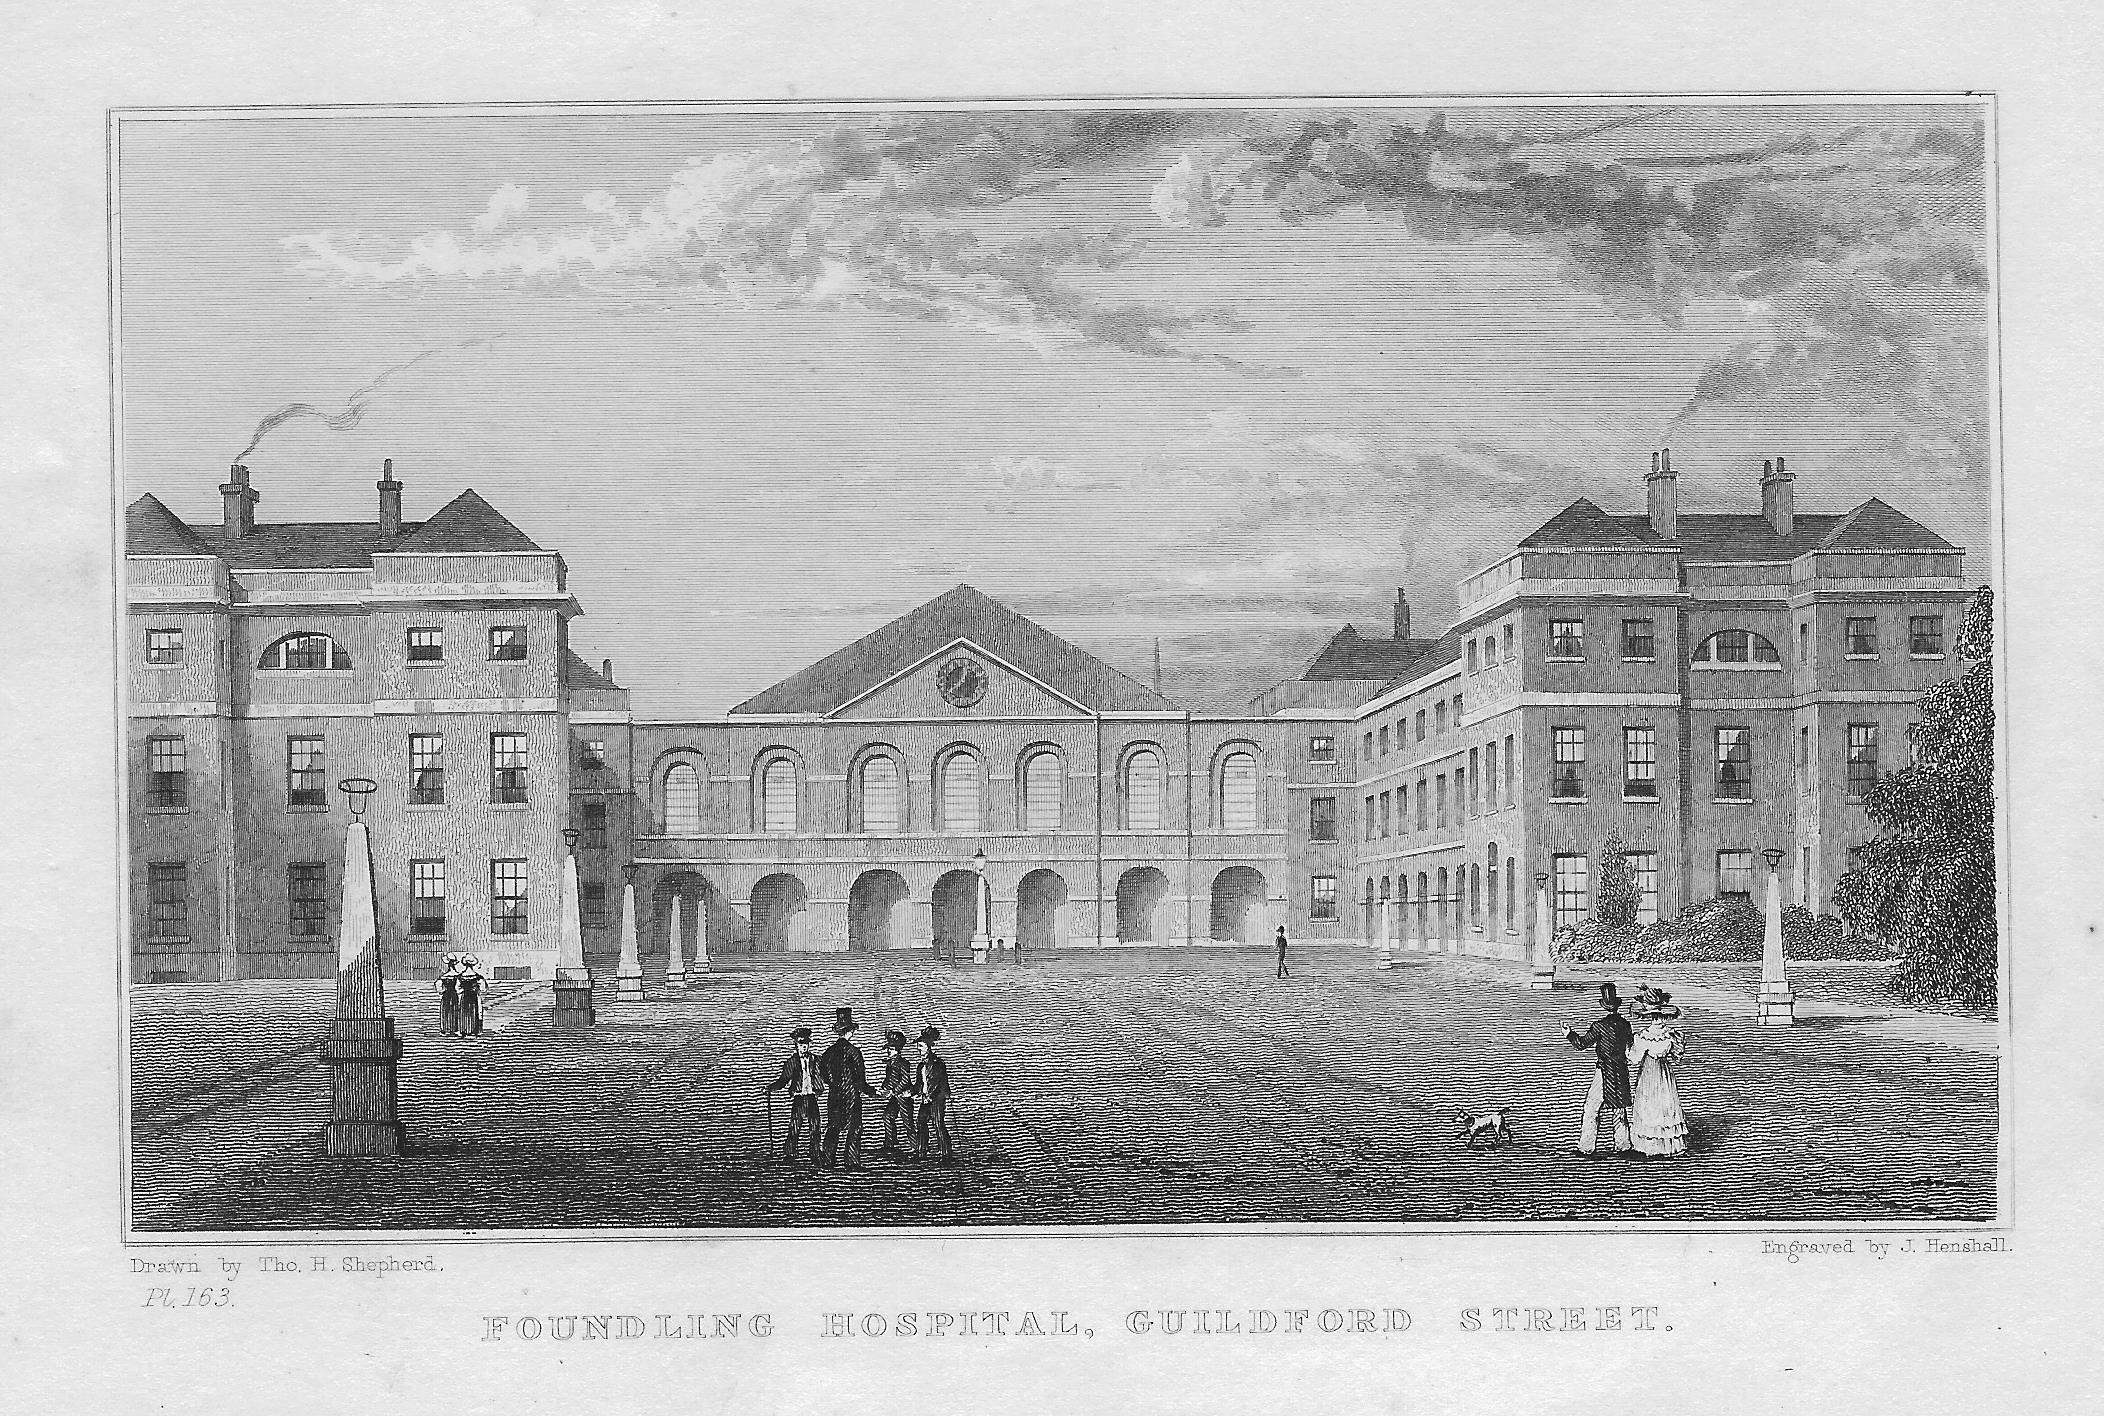 You tell London foundling hospital doubt it